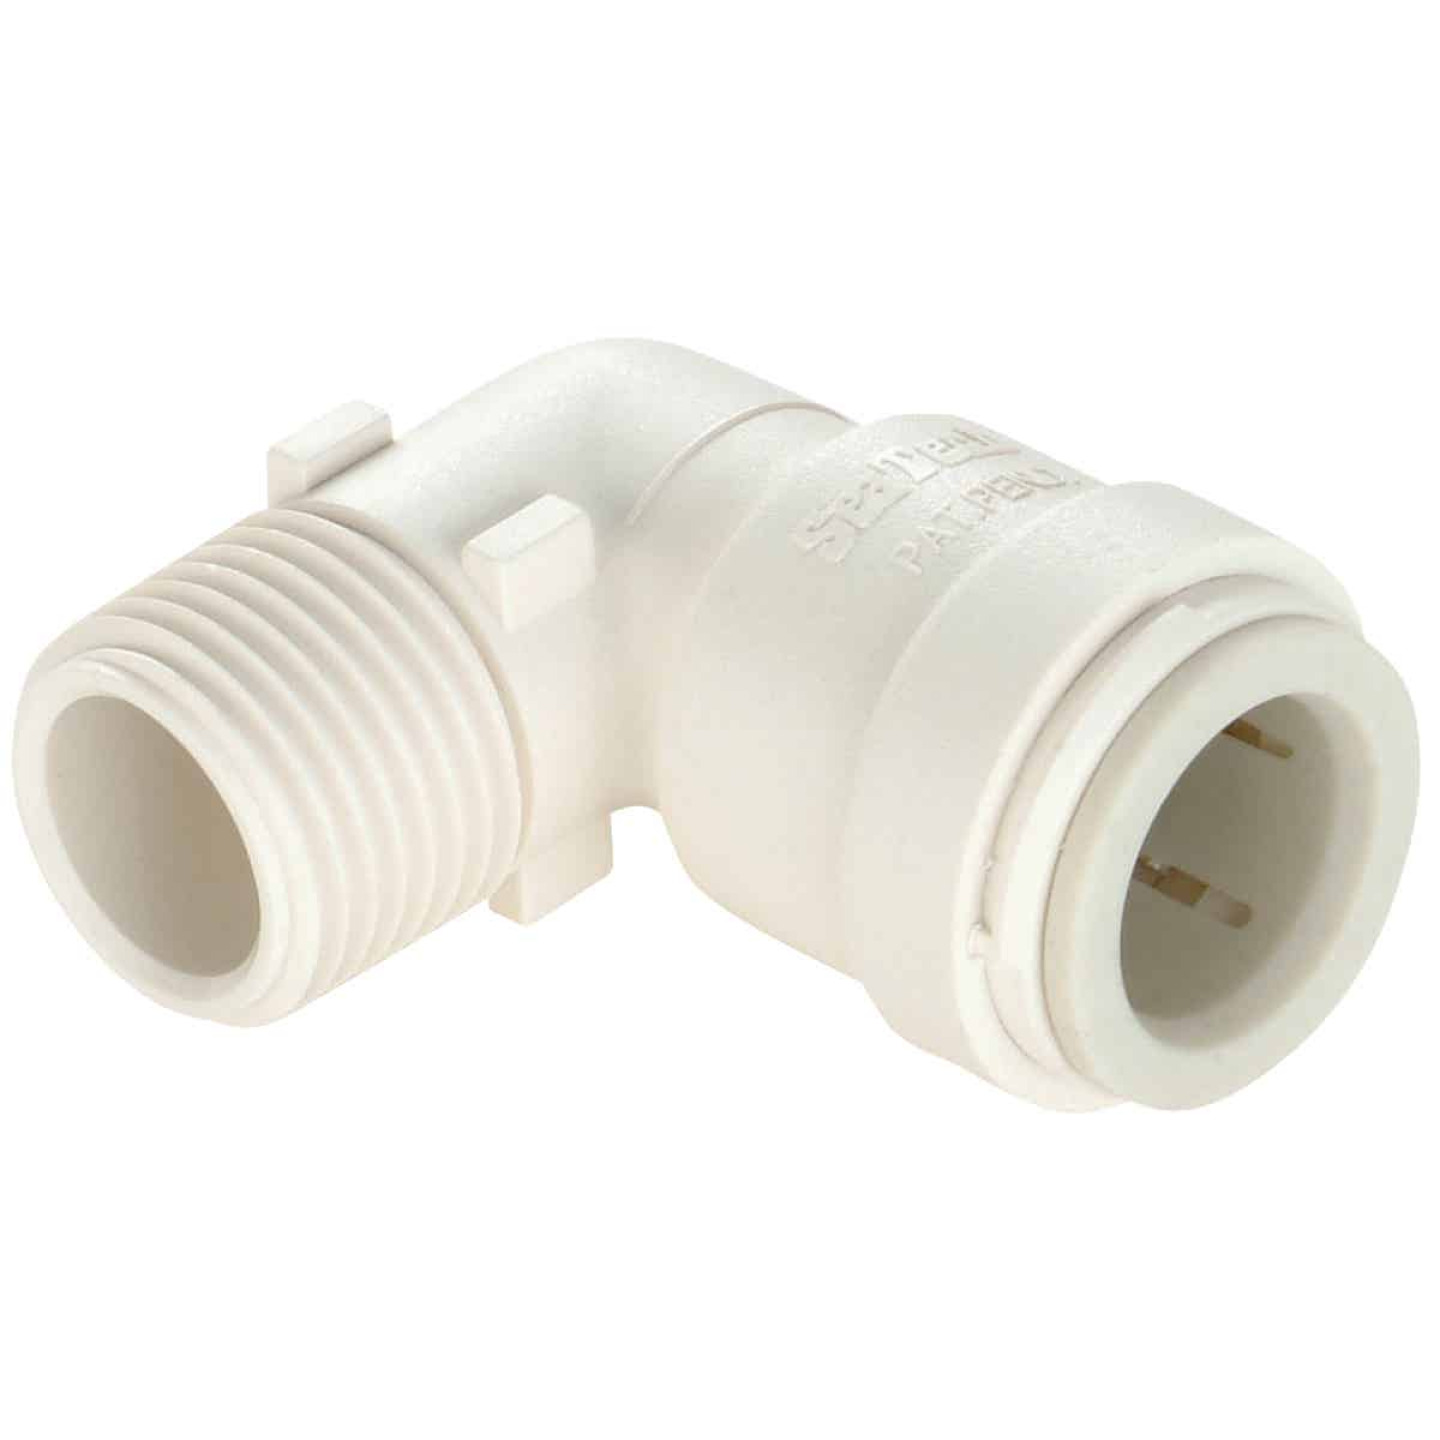 Watts 1/2 In. CTS x 3/8 In. MPT 90 Deg. Quick Connect Plastic Elbow (1/4 Bend) Image 1